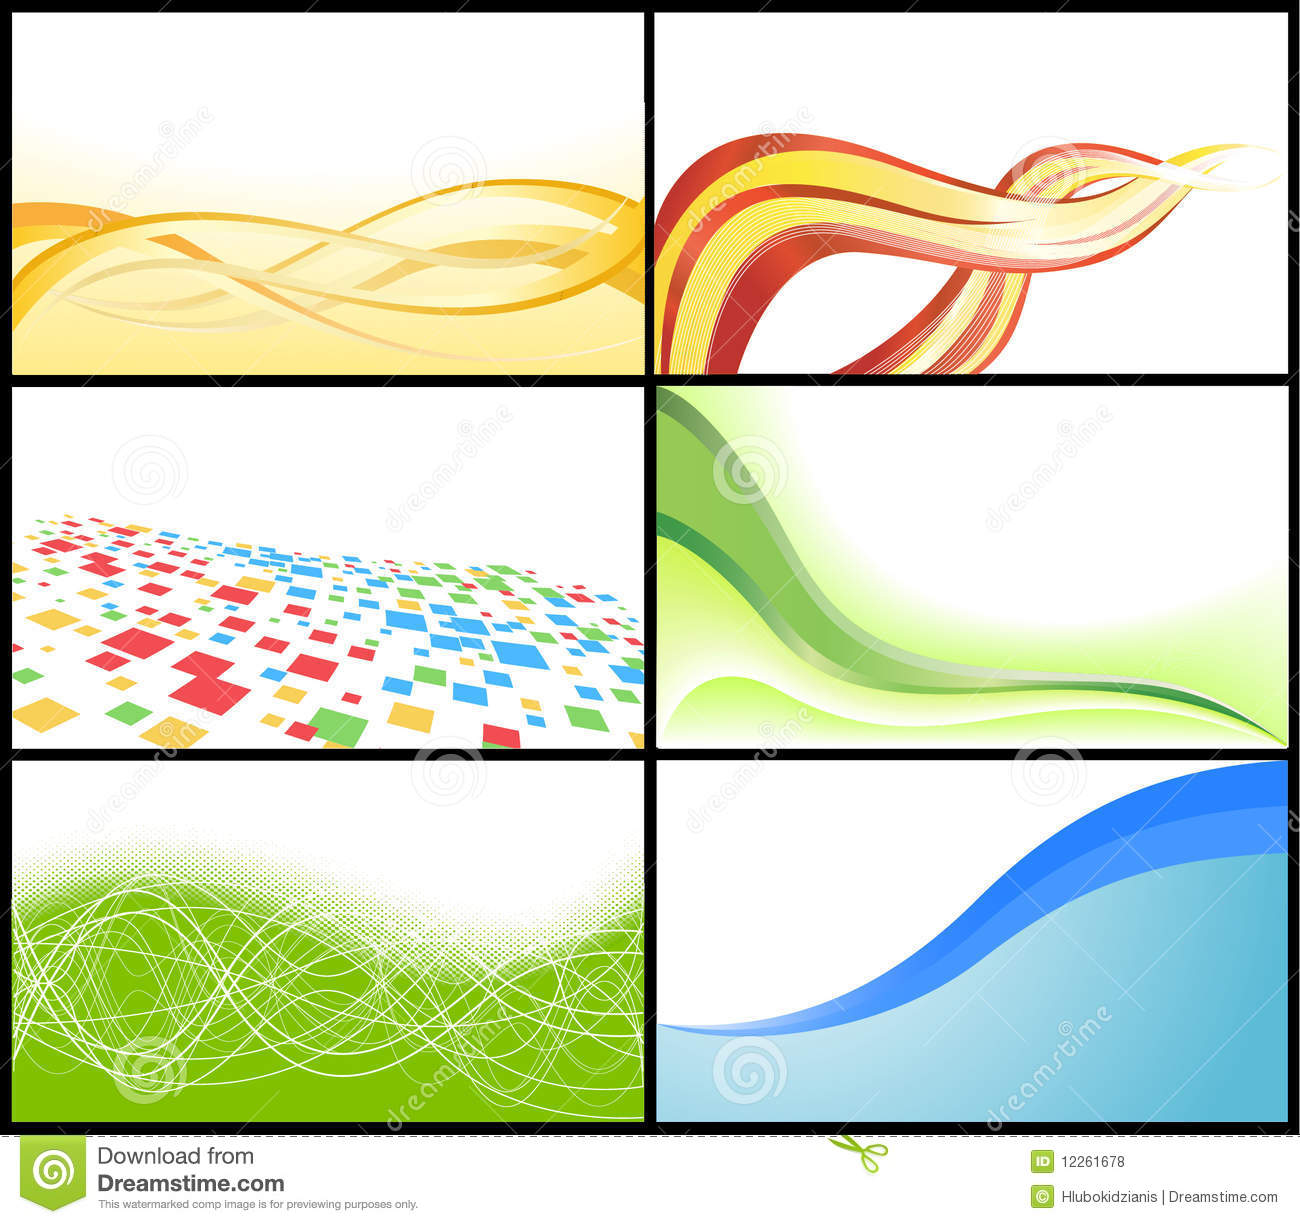 Vector business card stock vector. Image of creative - 12261678